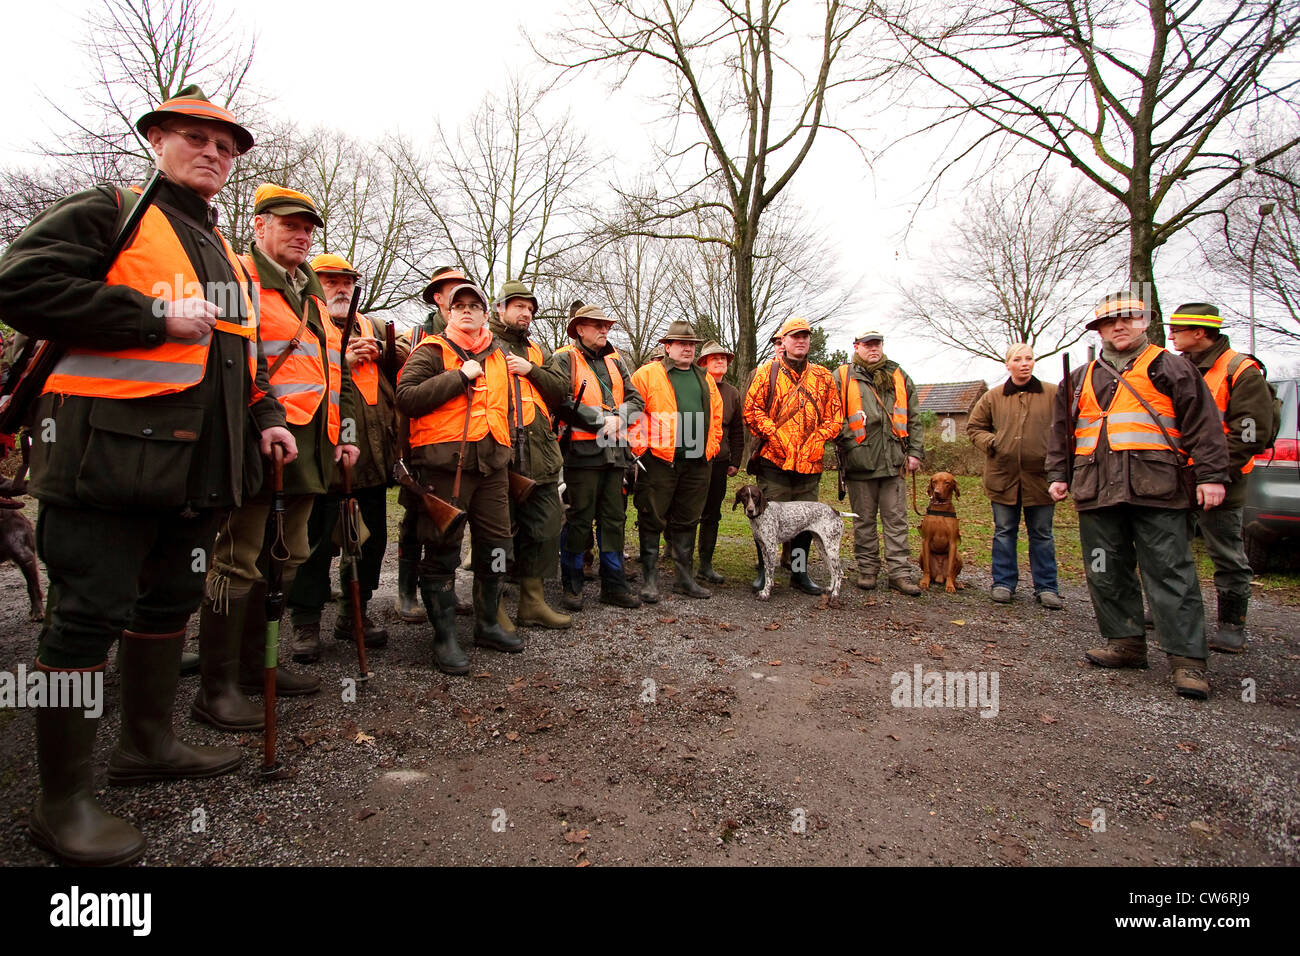 group photo of a shoot having come together for a battue, Germany - Stock Image